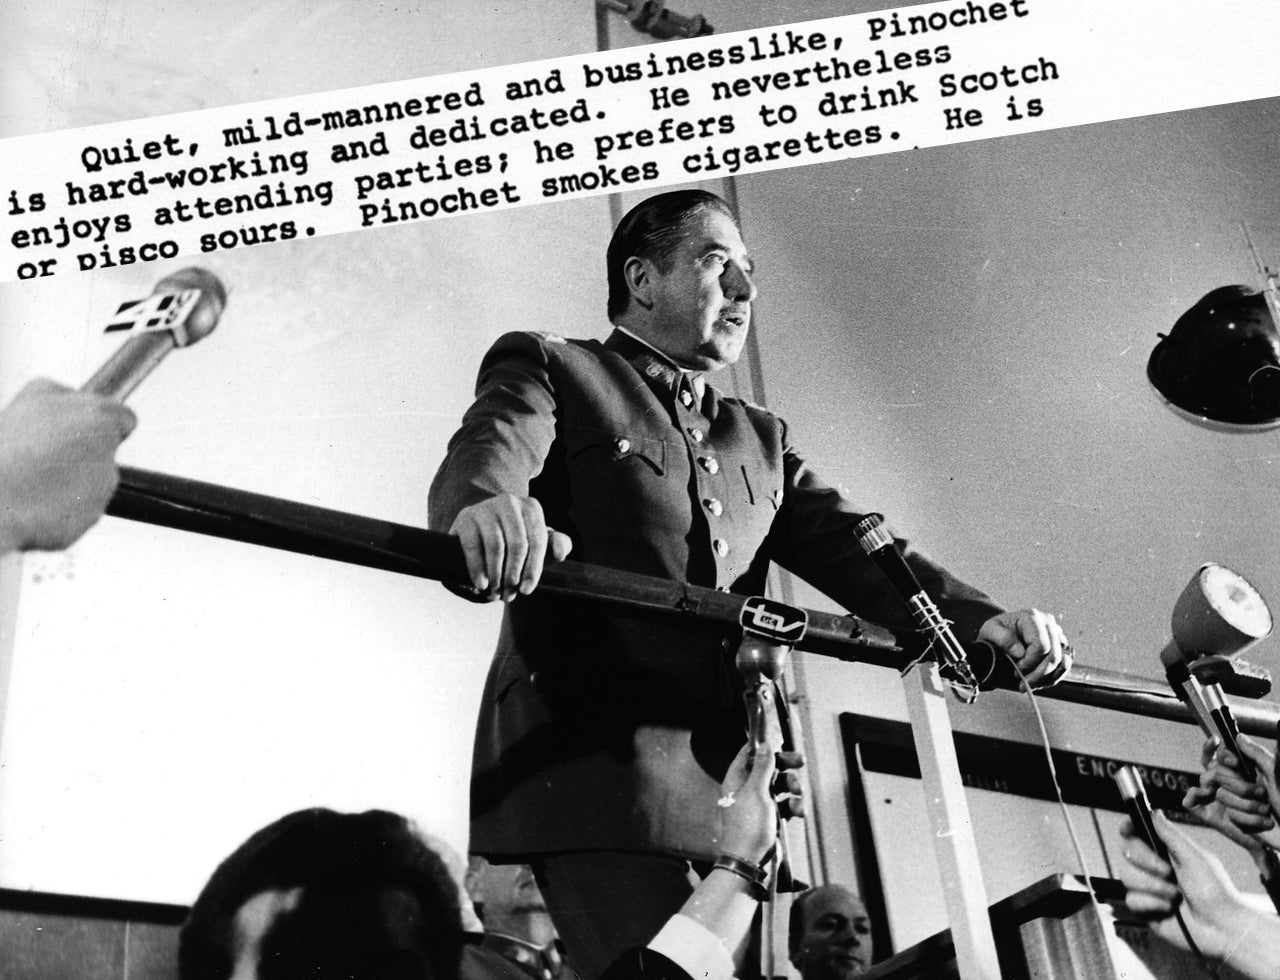 CIA Releases Files That Describe Ruthless Chilean Dictator Pinochet As 'Warm' And 'Mild-Mannered'